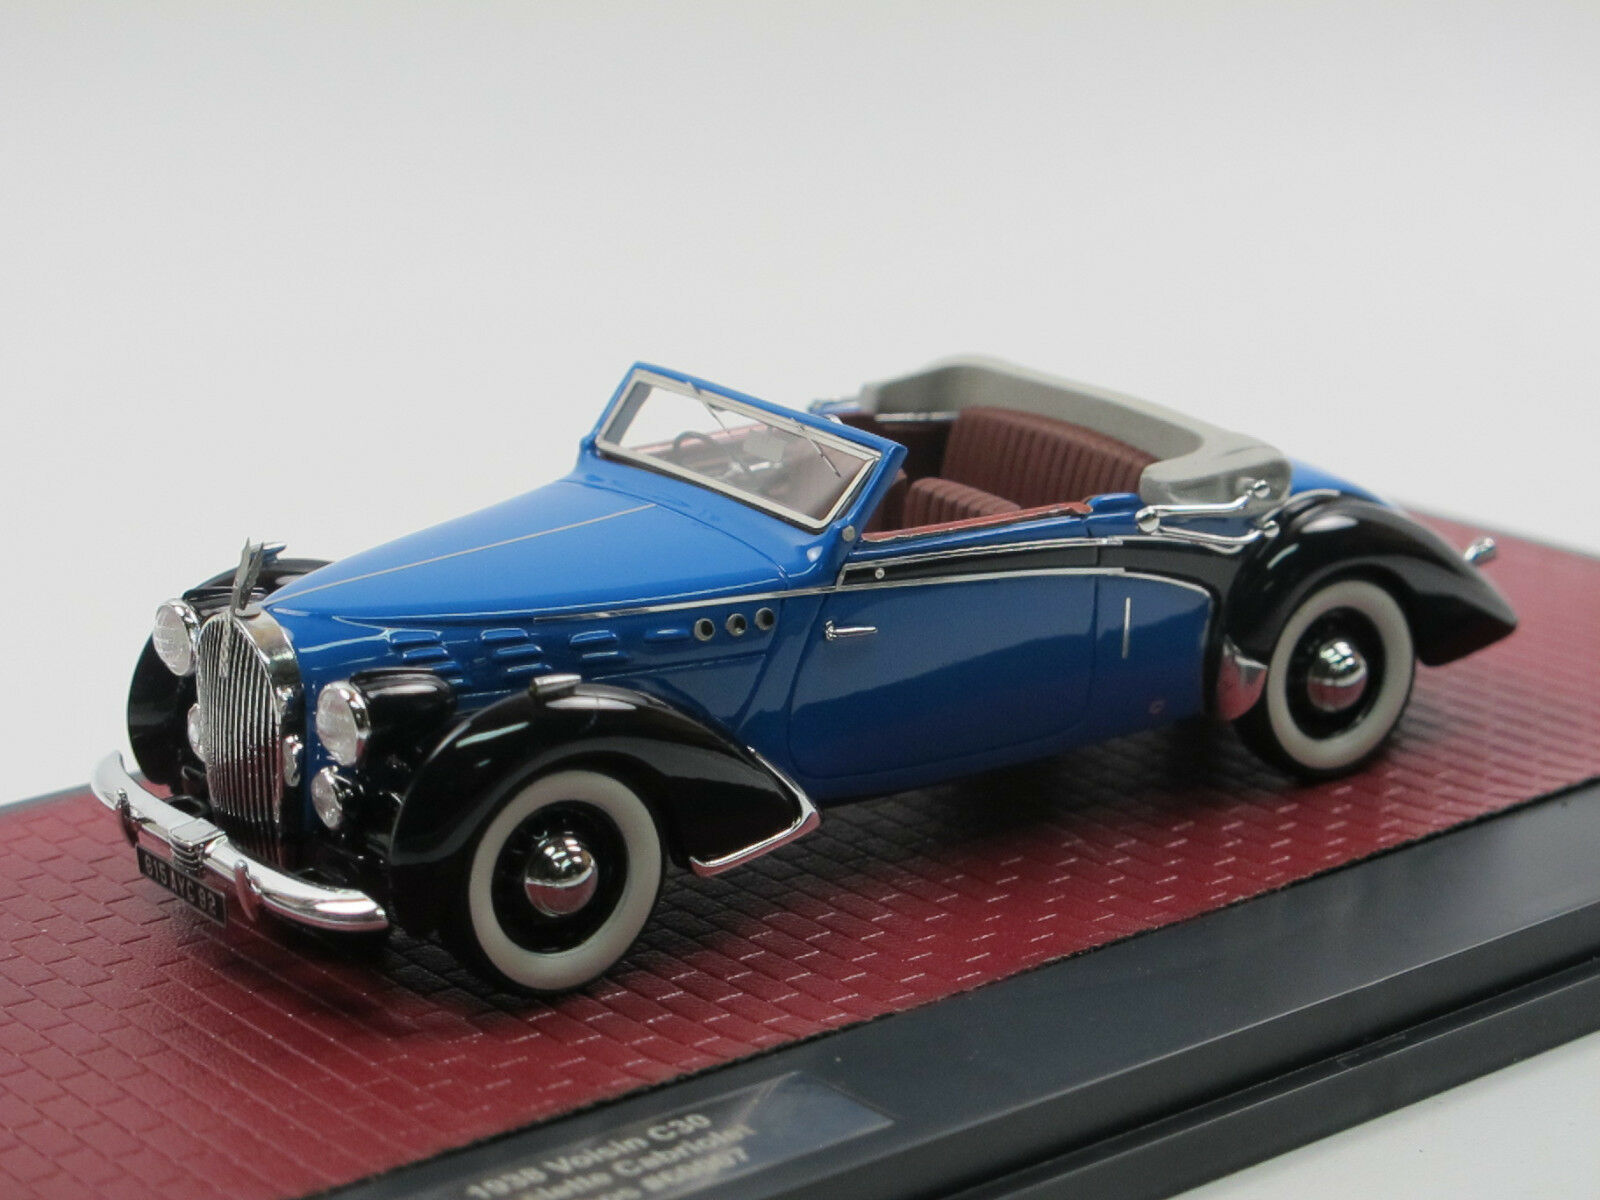 MATRIX SCALE MODELS 1938 Hood c30 GOELETTE ACAPULCO BY Dubos Open bleu 1 43